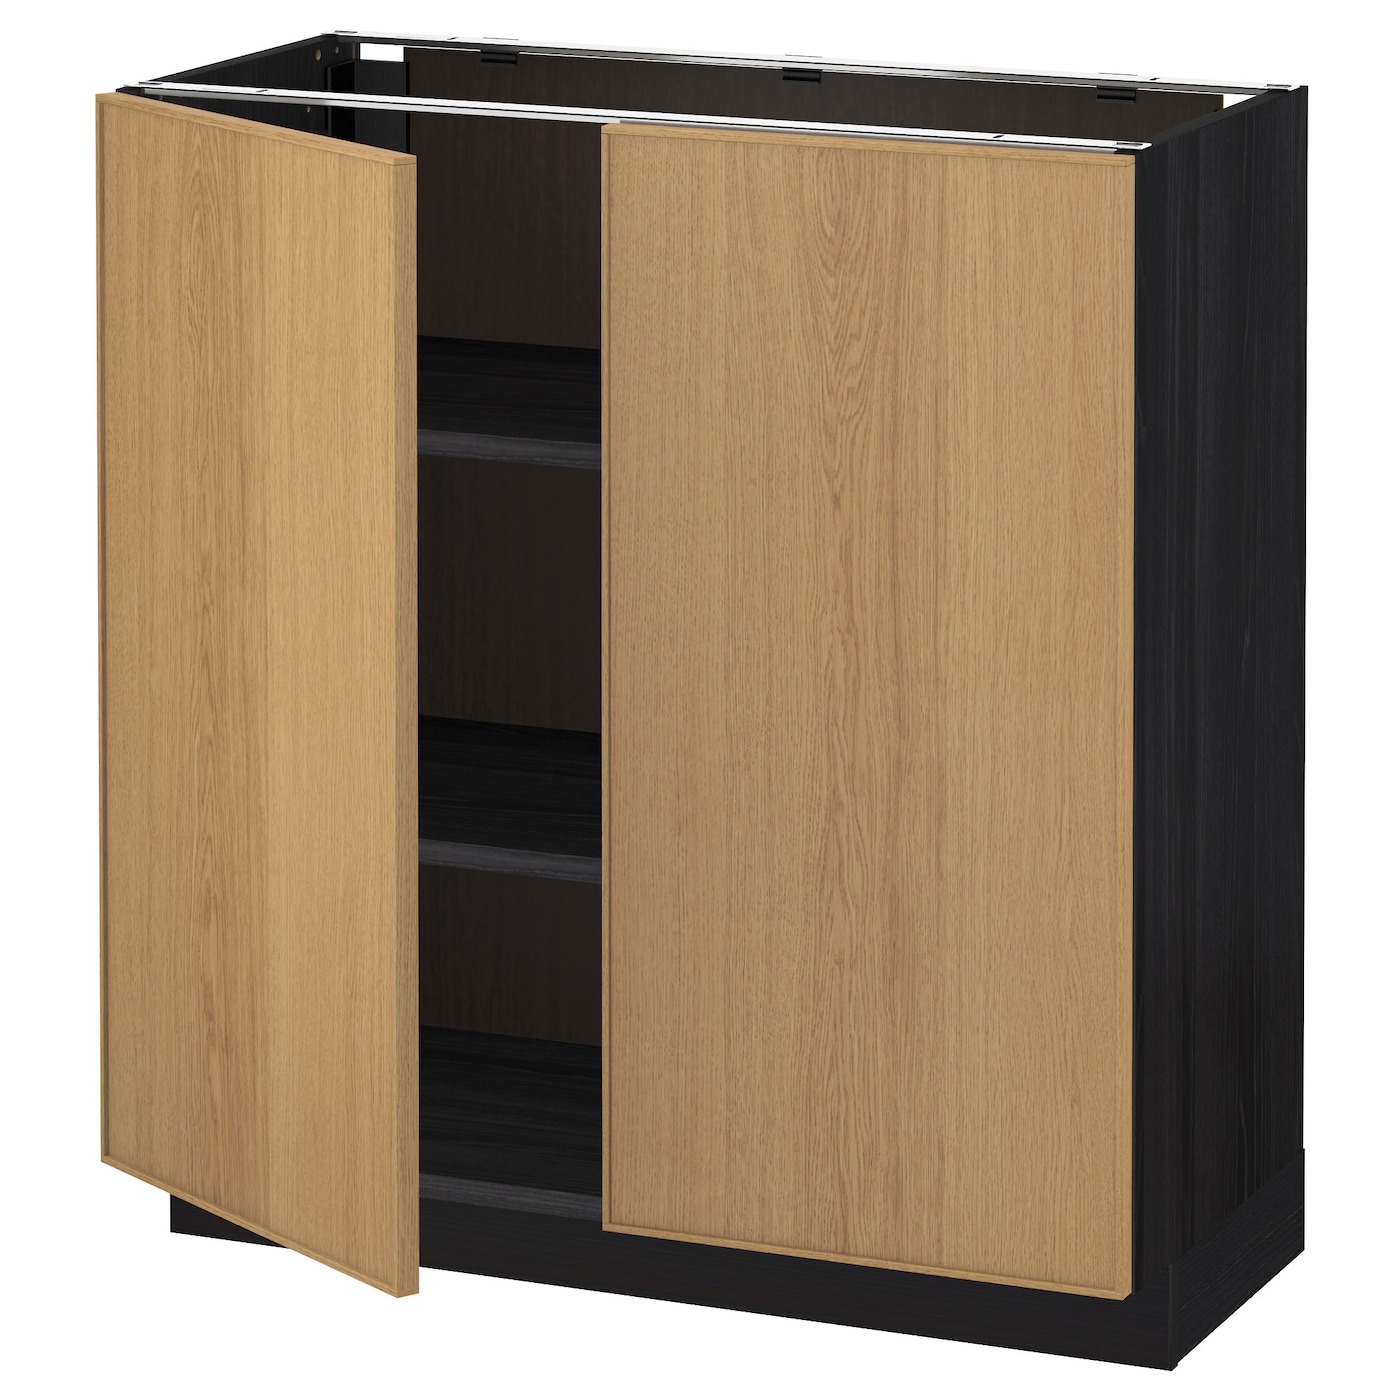 Metod base cabinet with shelves 2 doors black ekestad oak for Black cabinet with doors